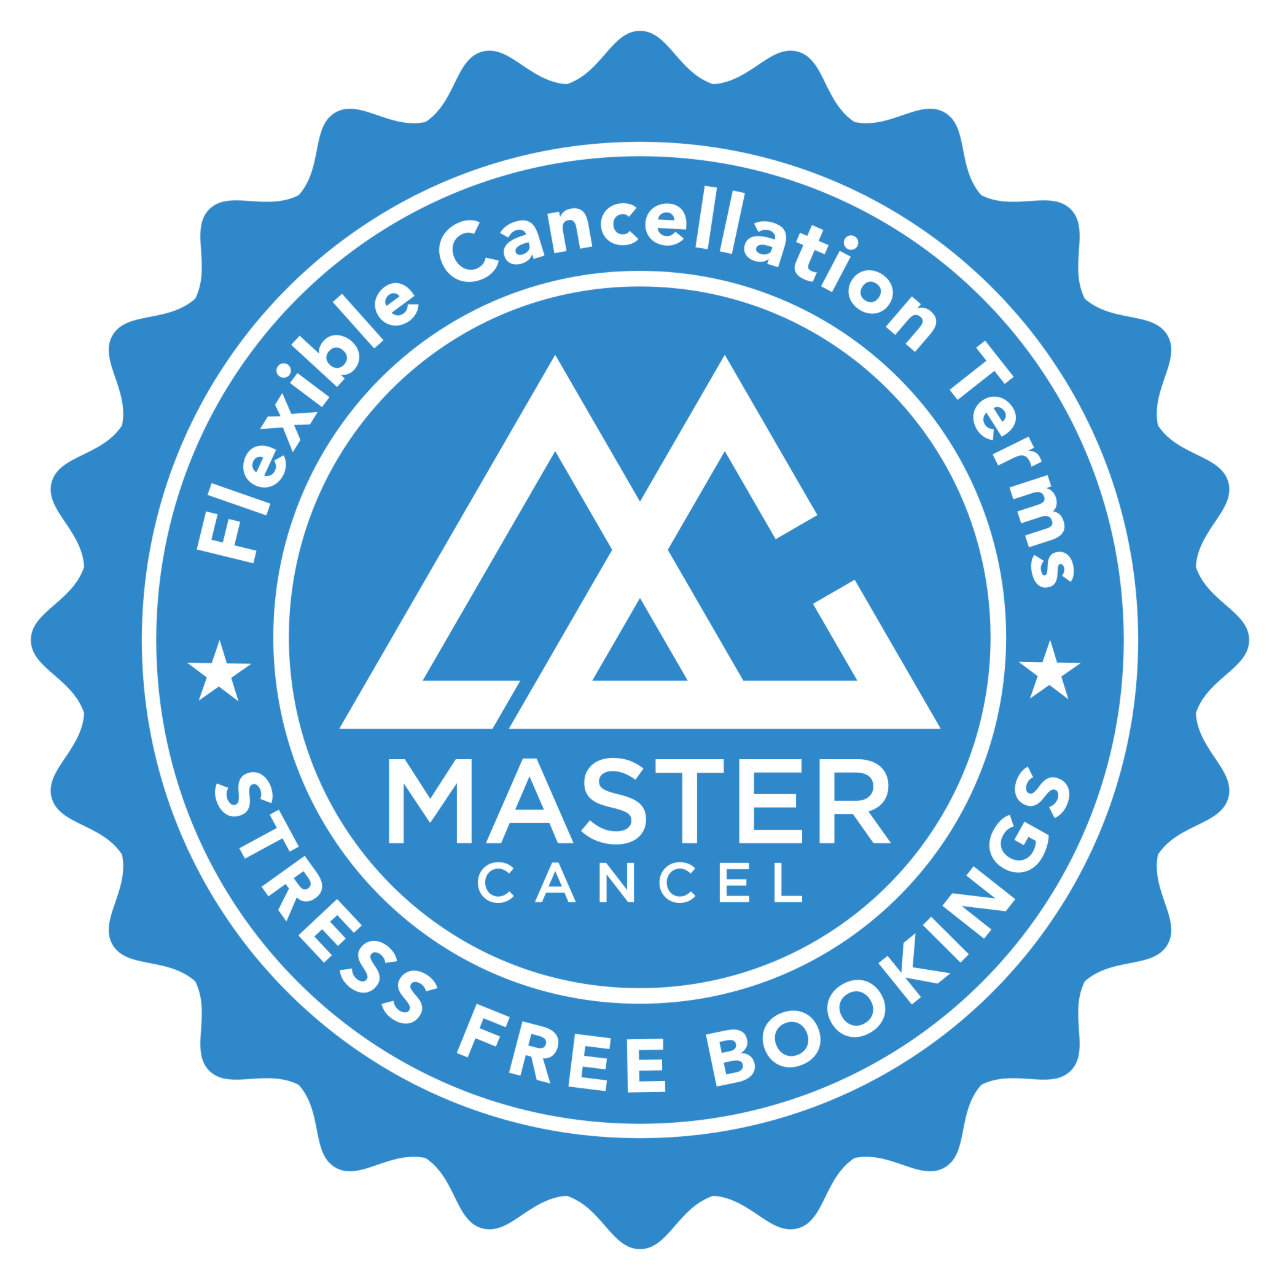 Master Cancel - cancellation protection